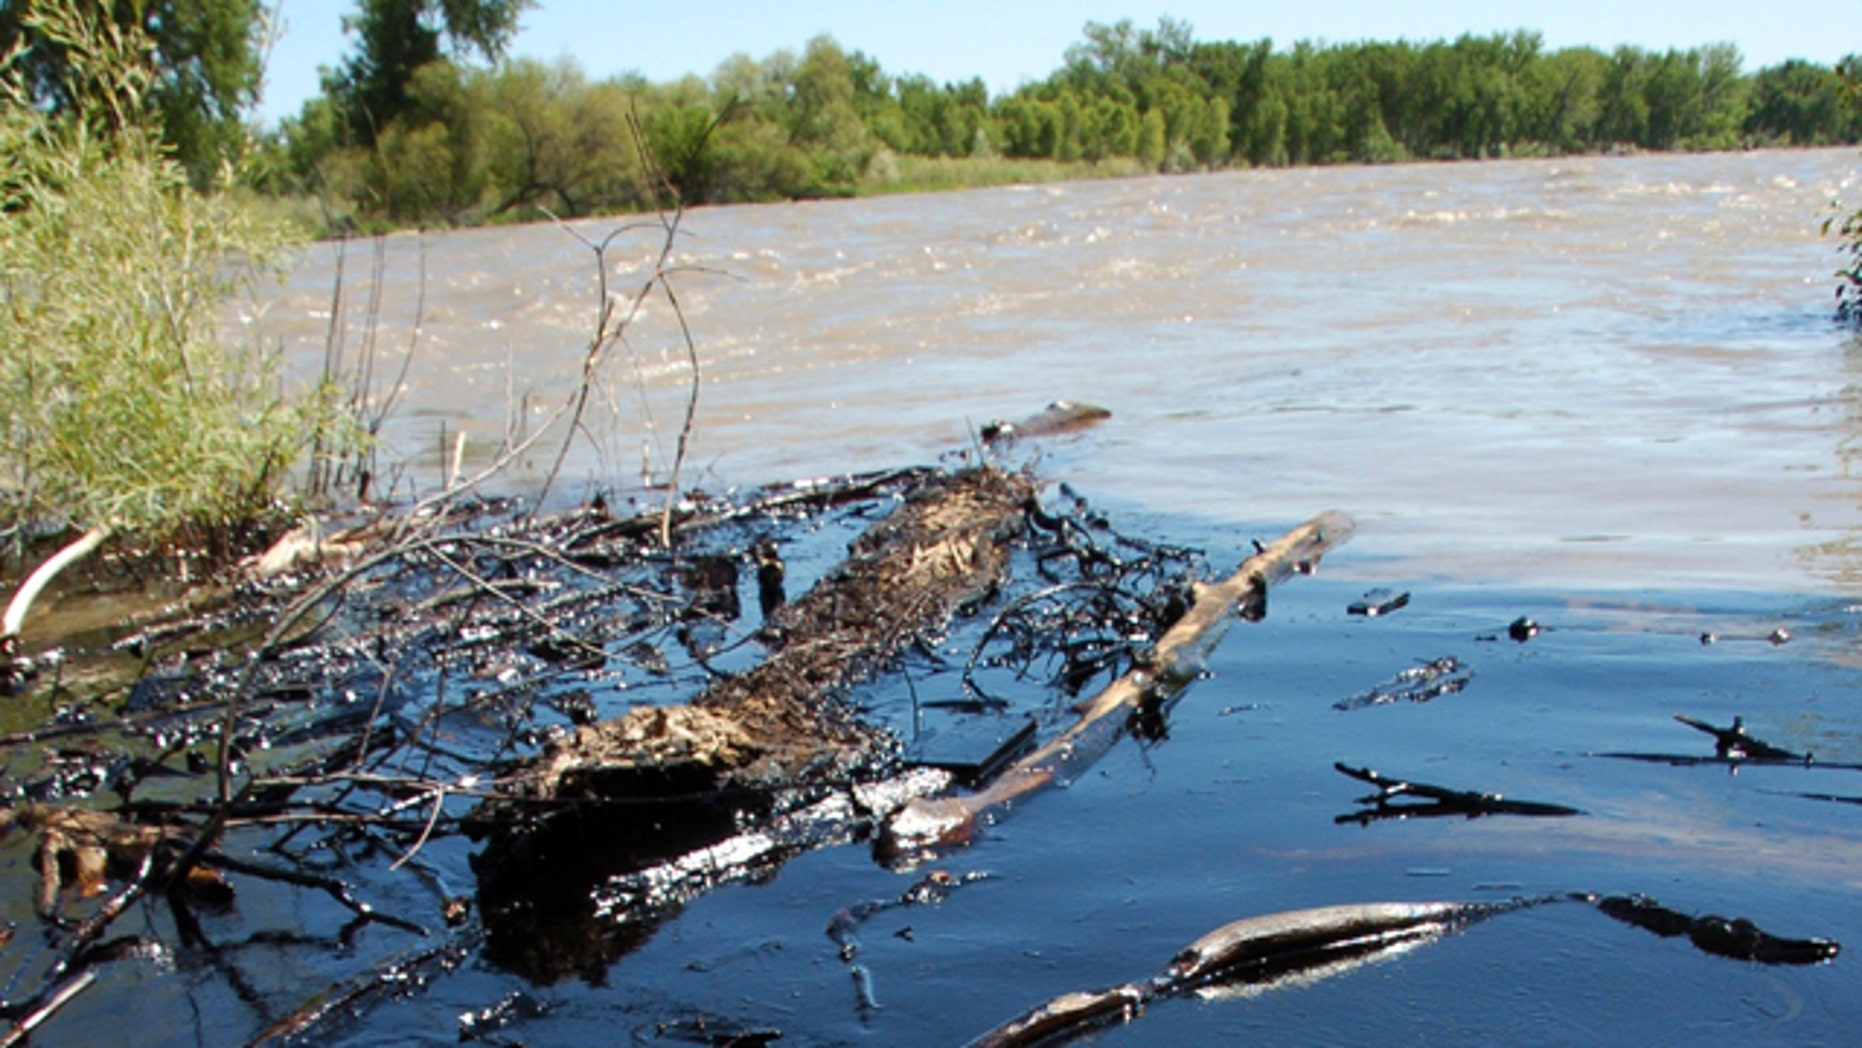 July 2,2011: Oil from a ruptured ExxonMobil pipeline is seen in the Yellowstone River and along its banks near Laurel, Mont.